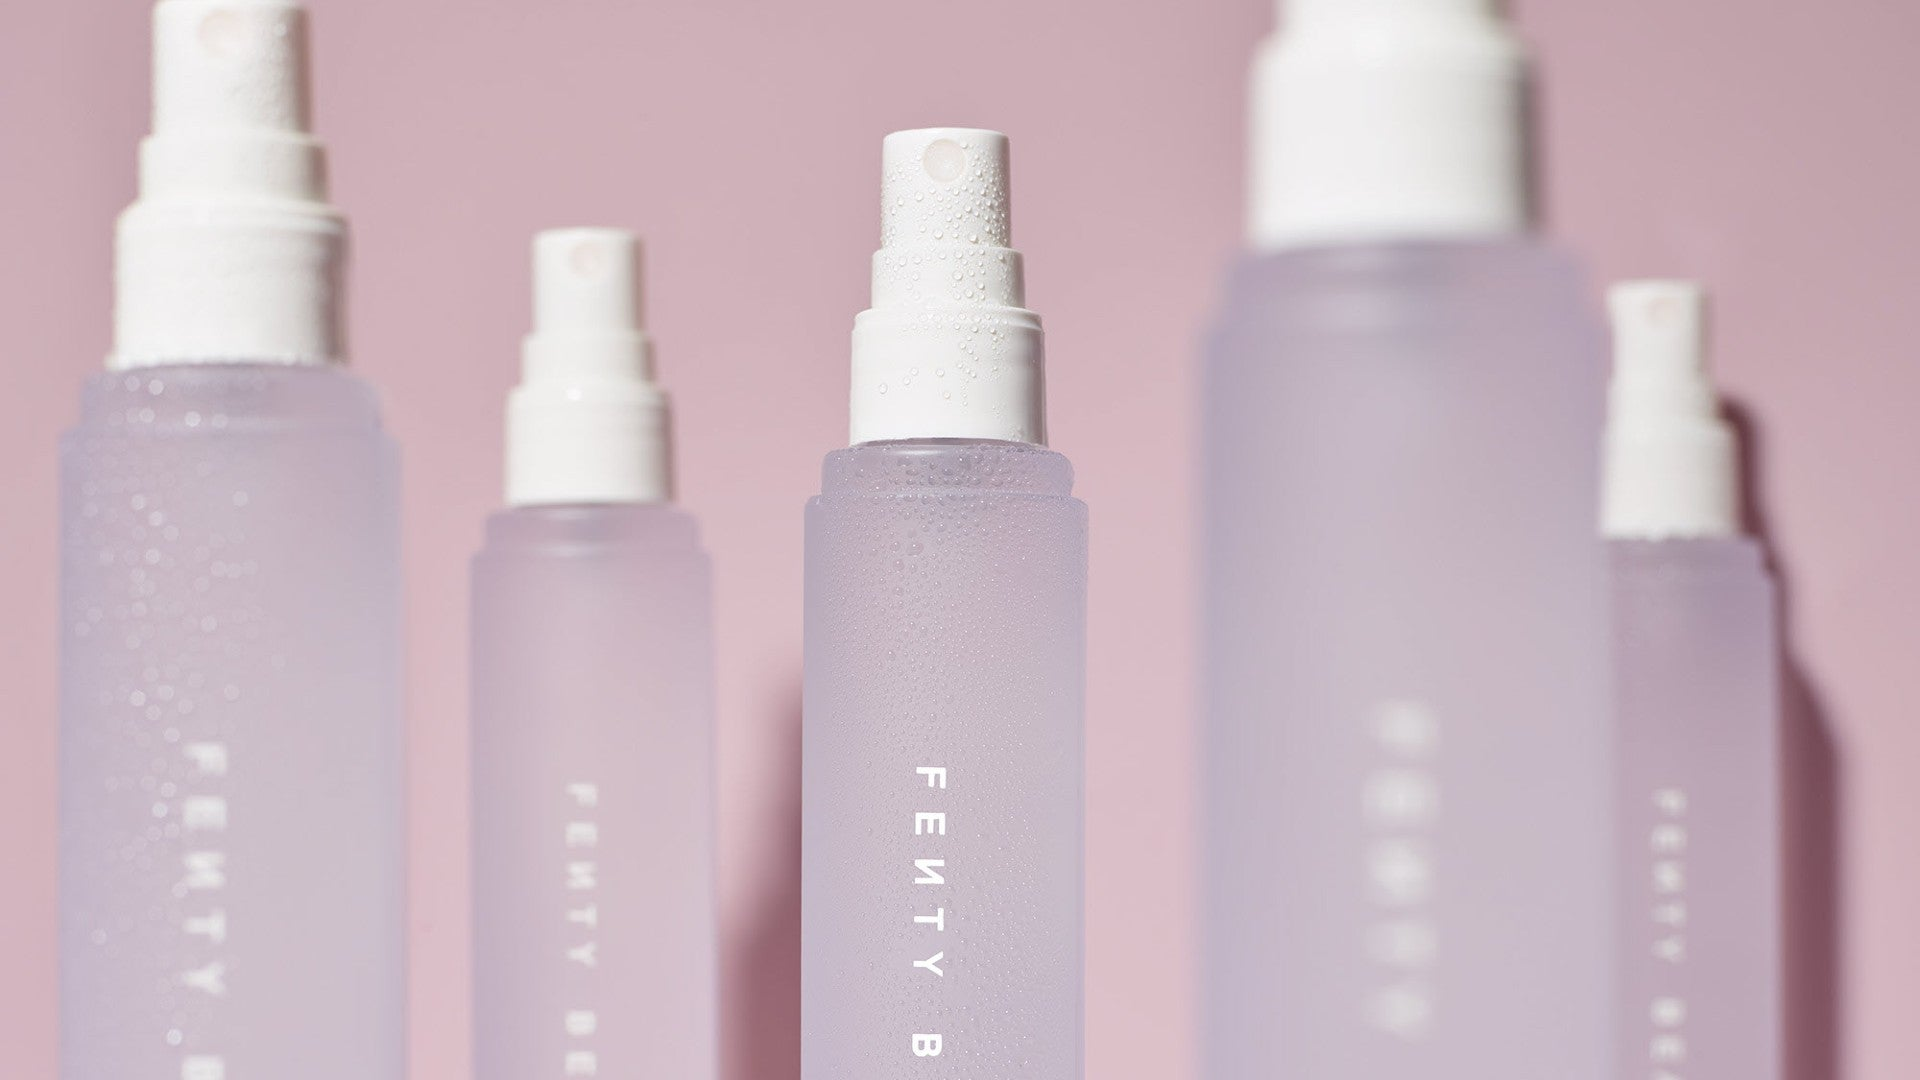 Fenty Beauty Just Entered The World Of Setting Sprays